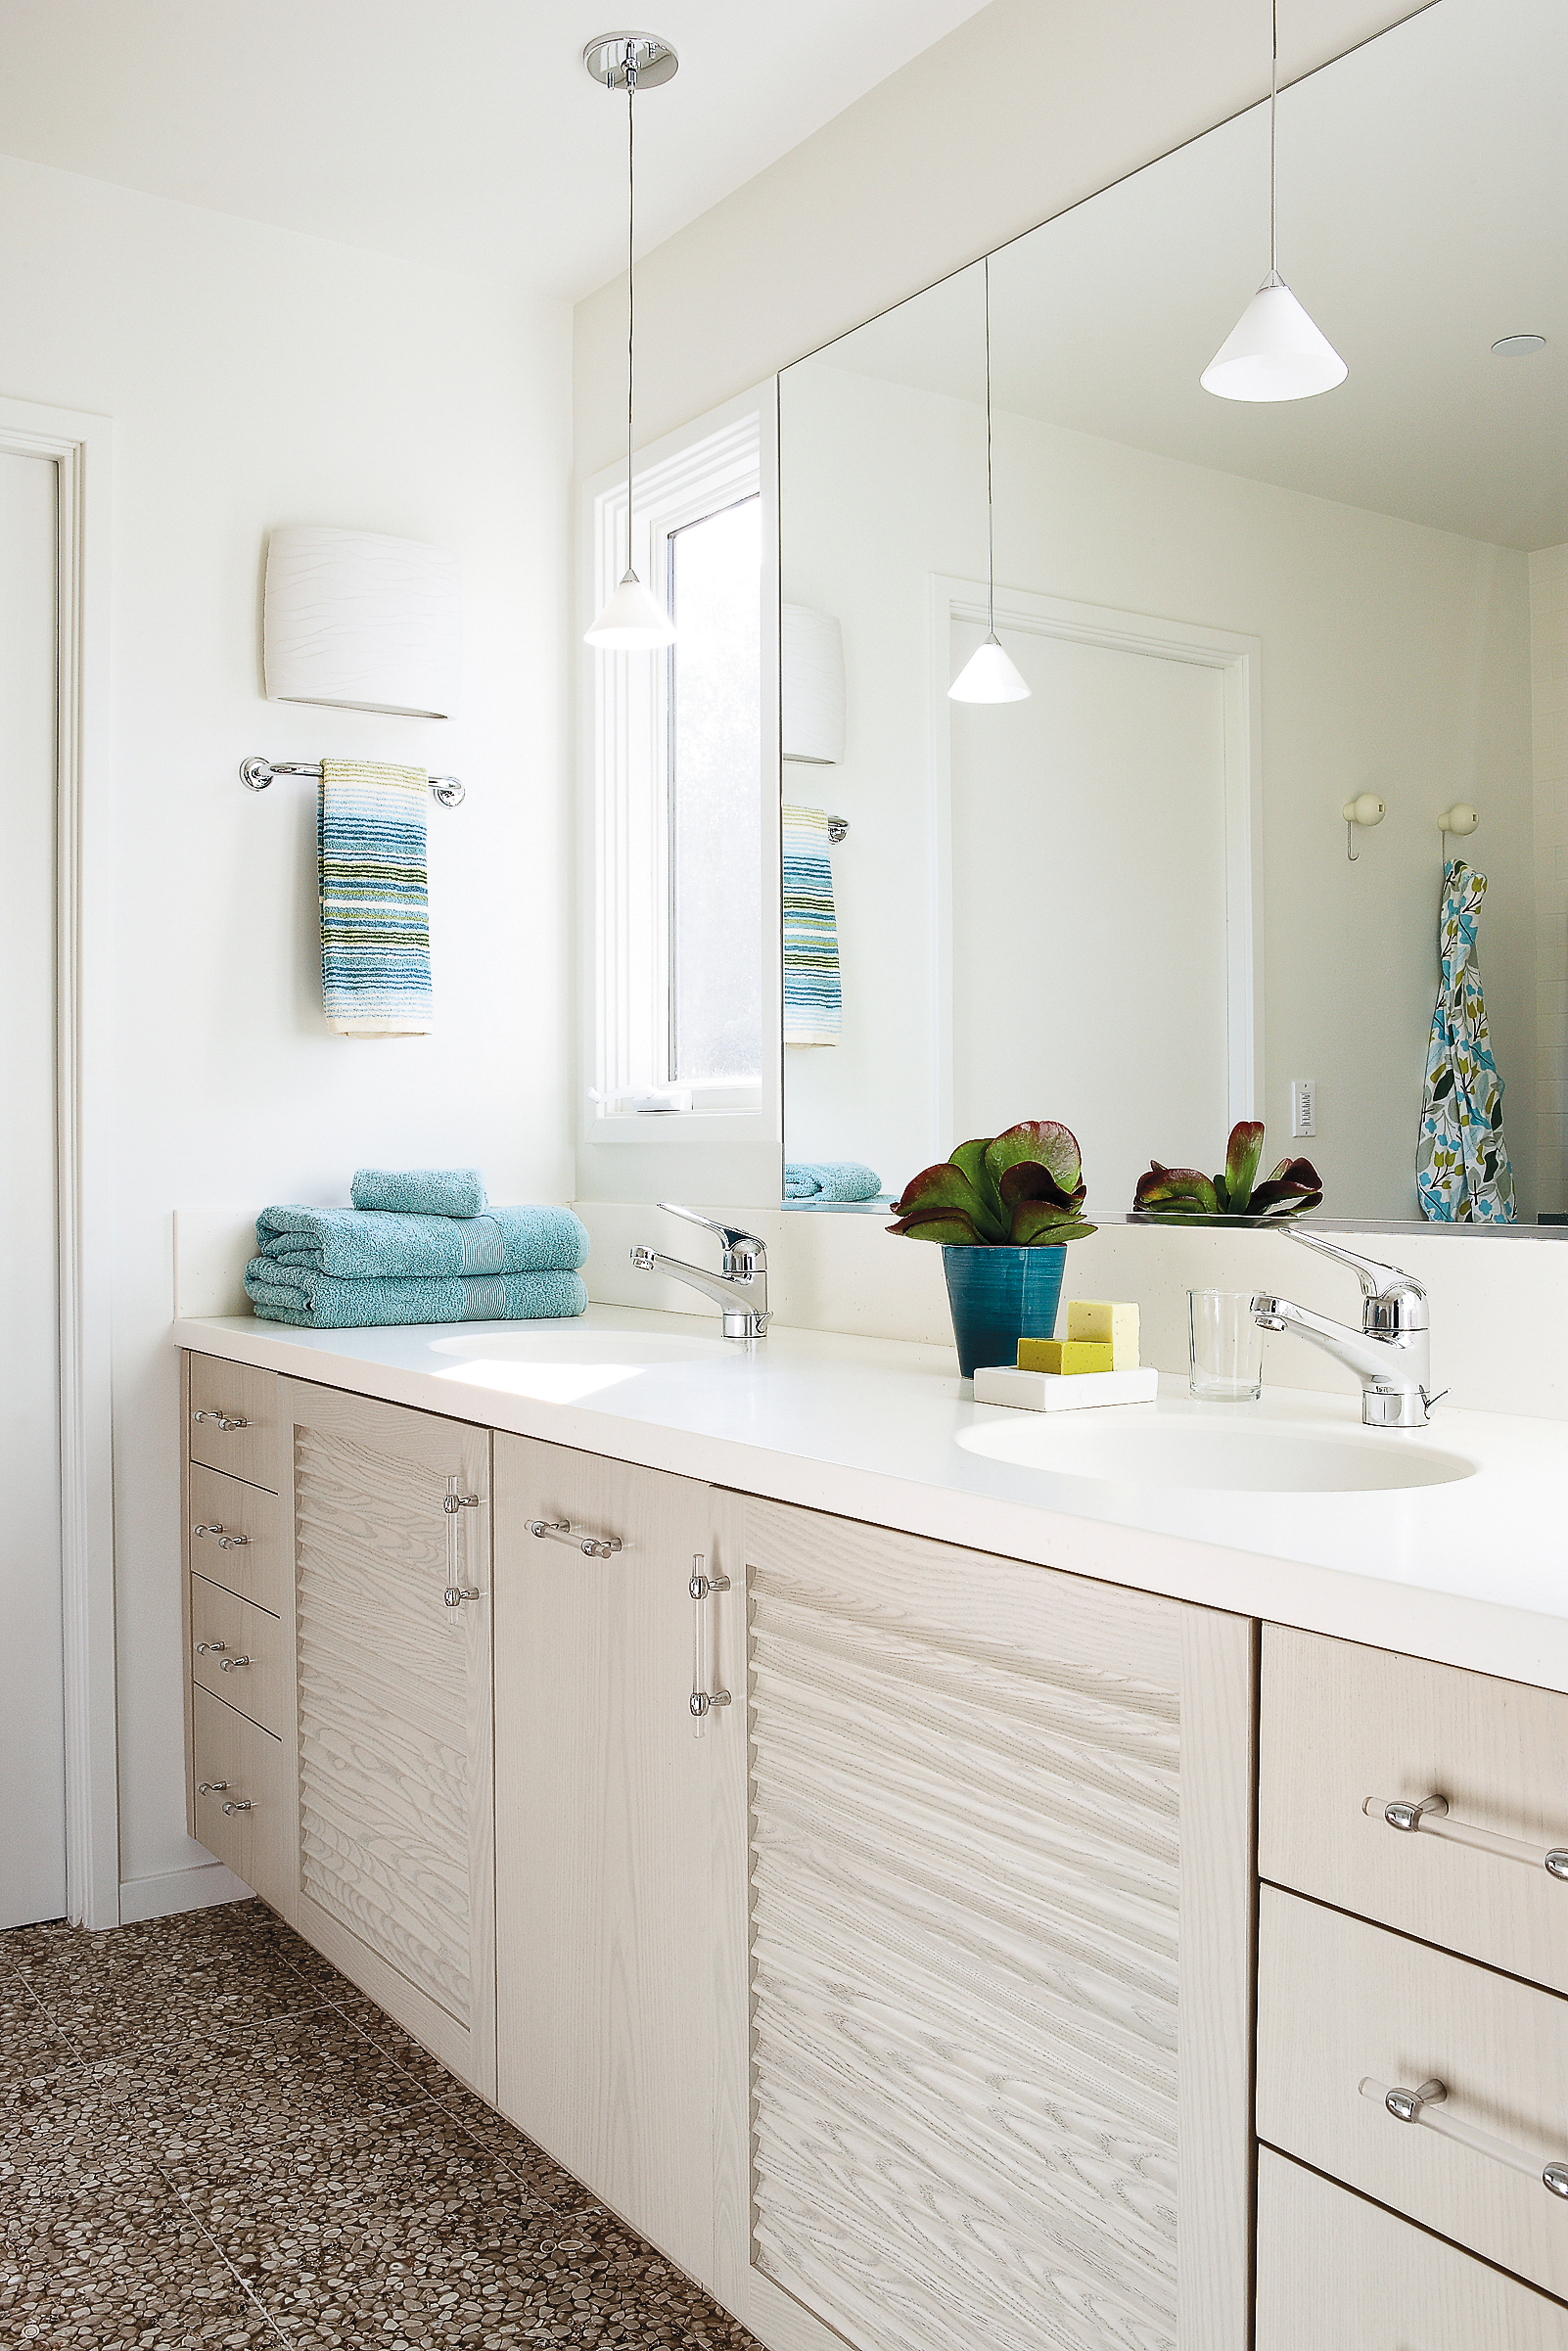 12 Ideas for Bathroom Counters - Sunset Magazine